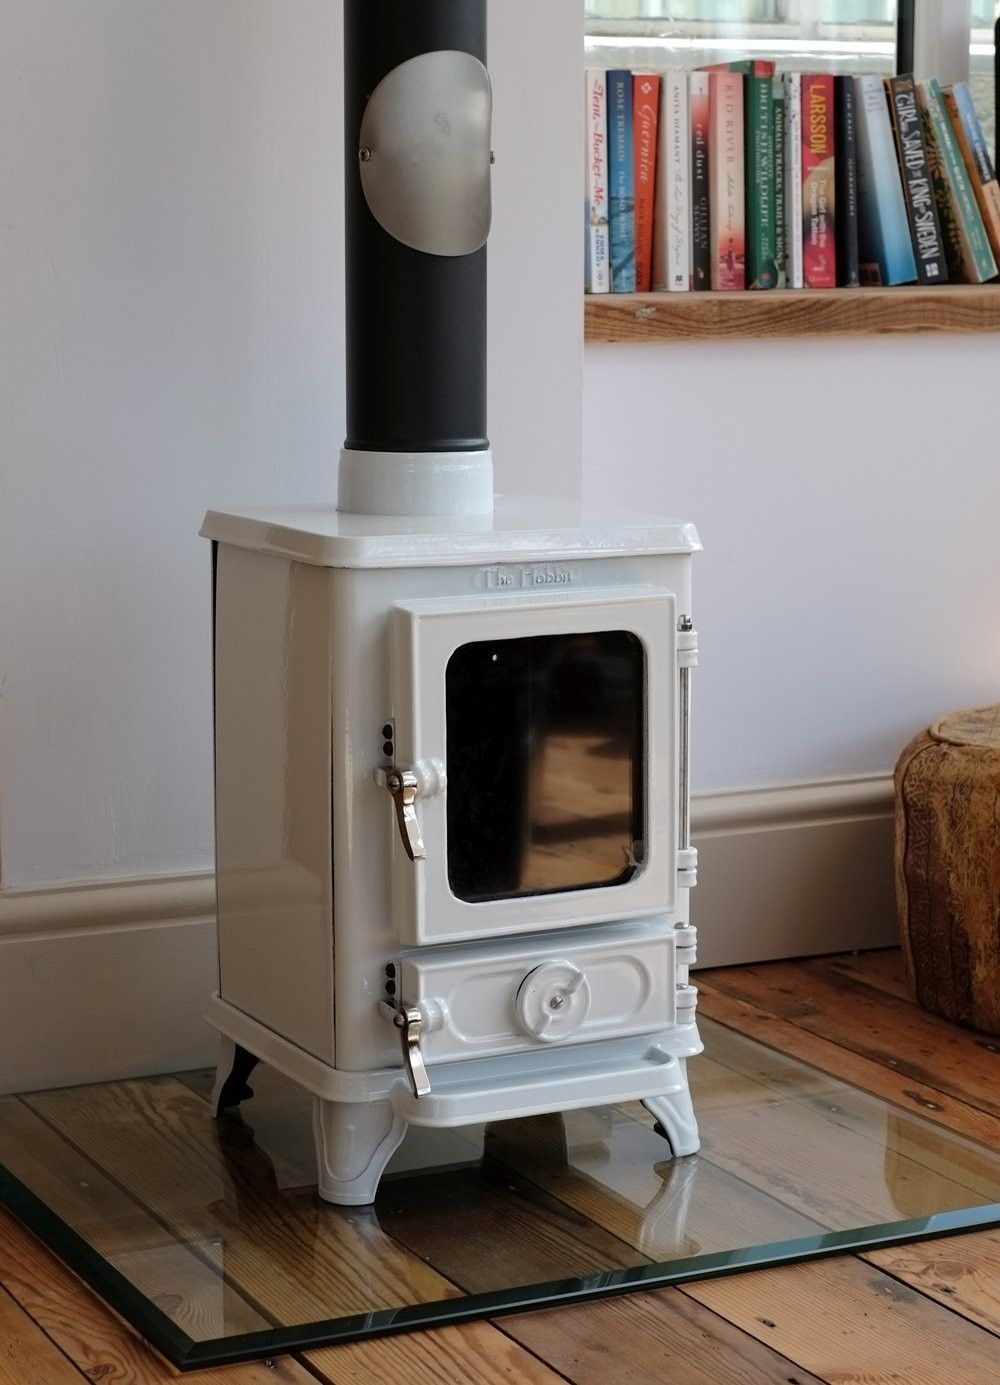 Pin By Builtbybrooks On For The Home Hobbit Wood Stove Wood